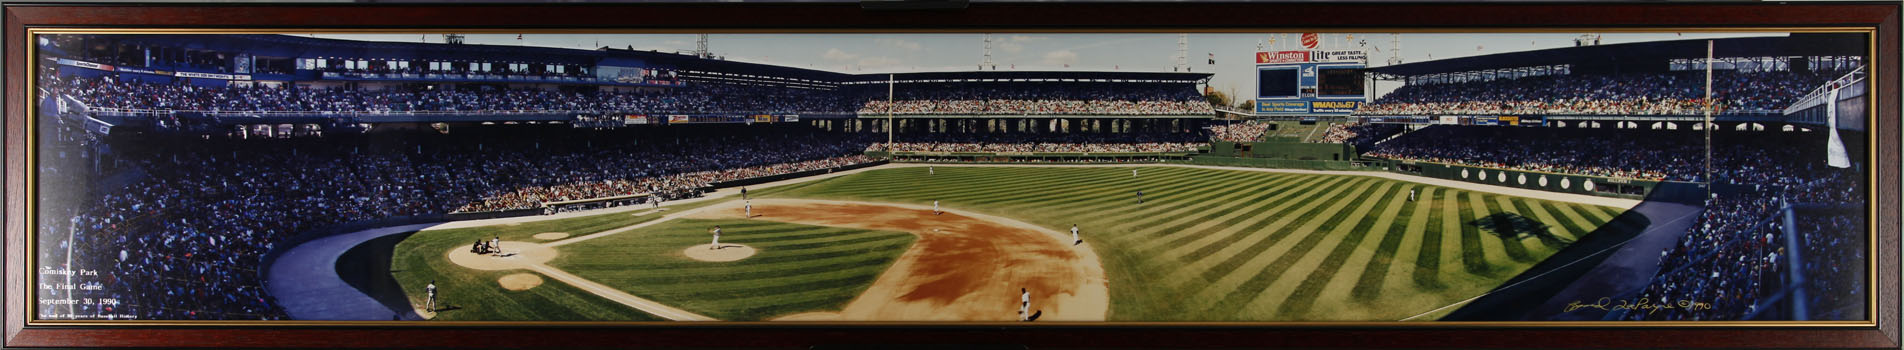 Comiskey Park Panoramic - final game - Framed